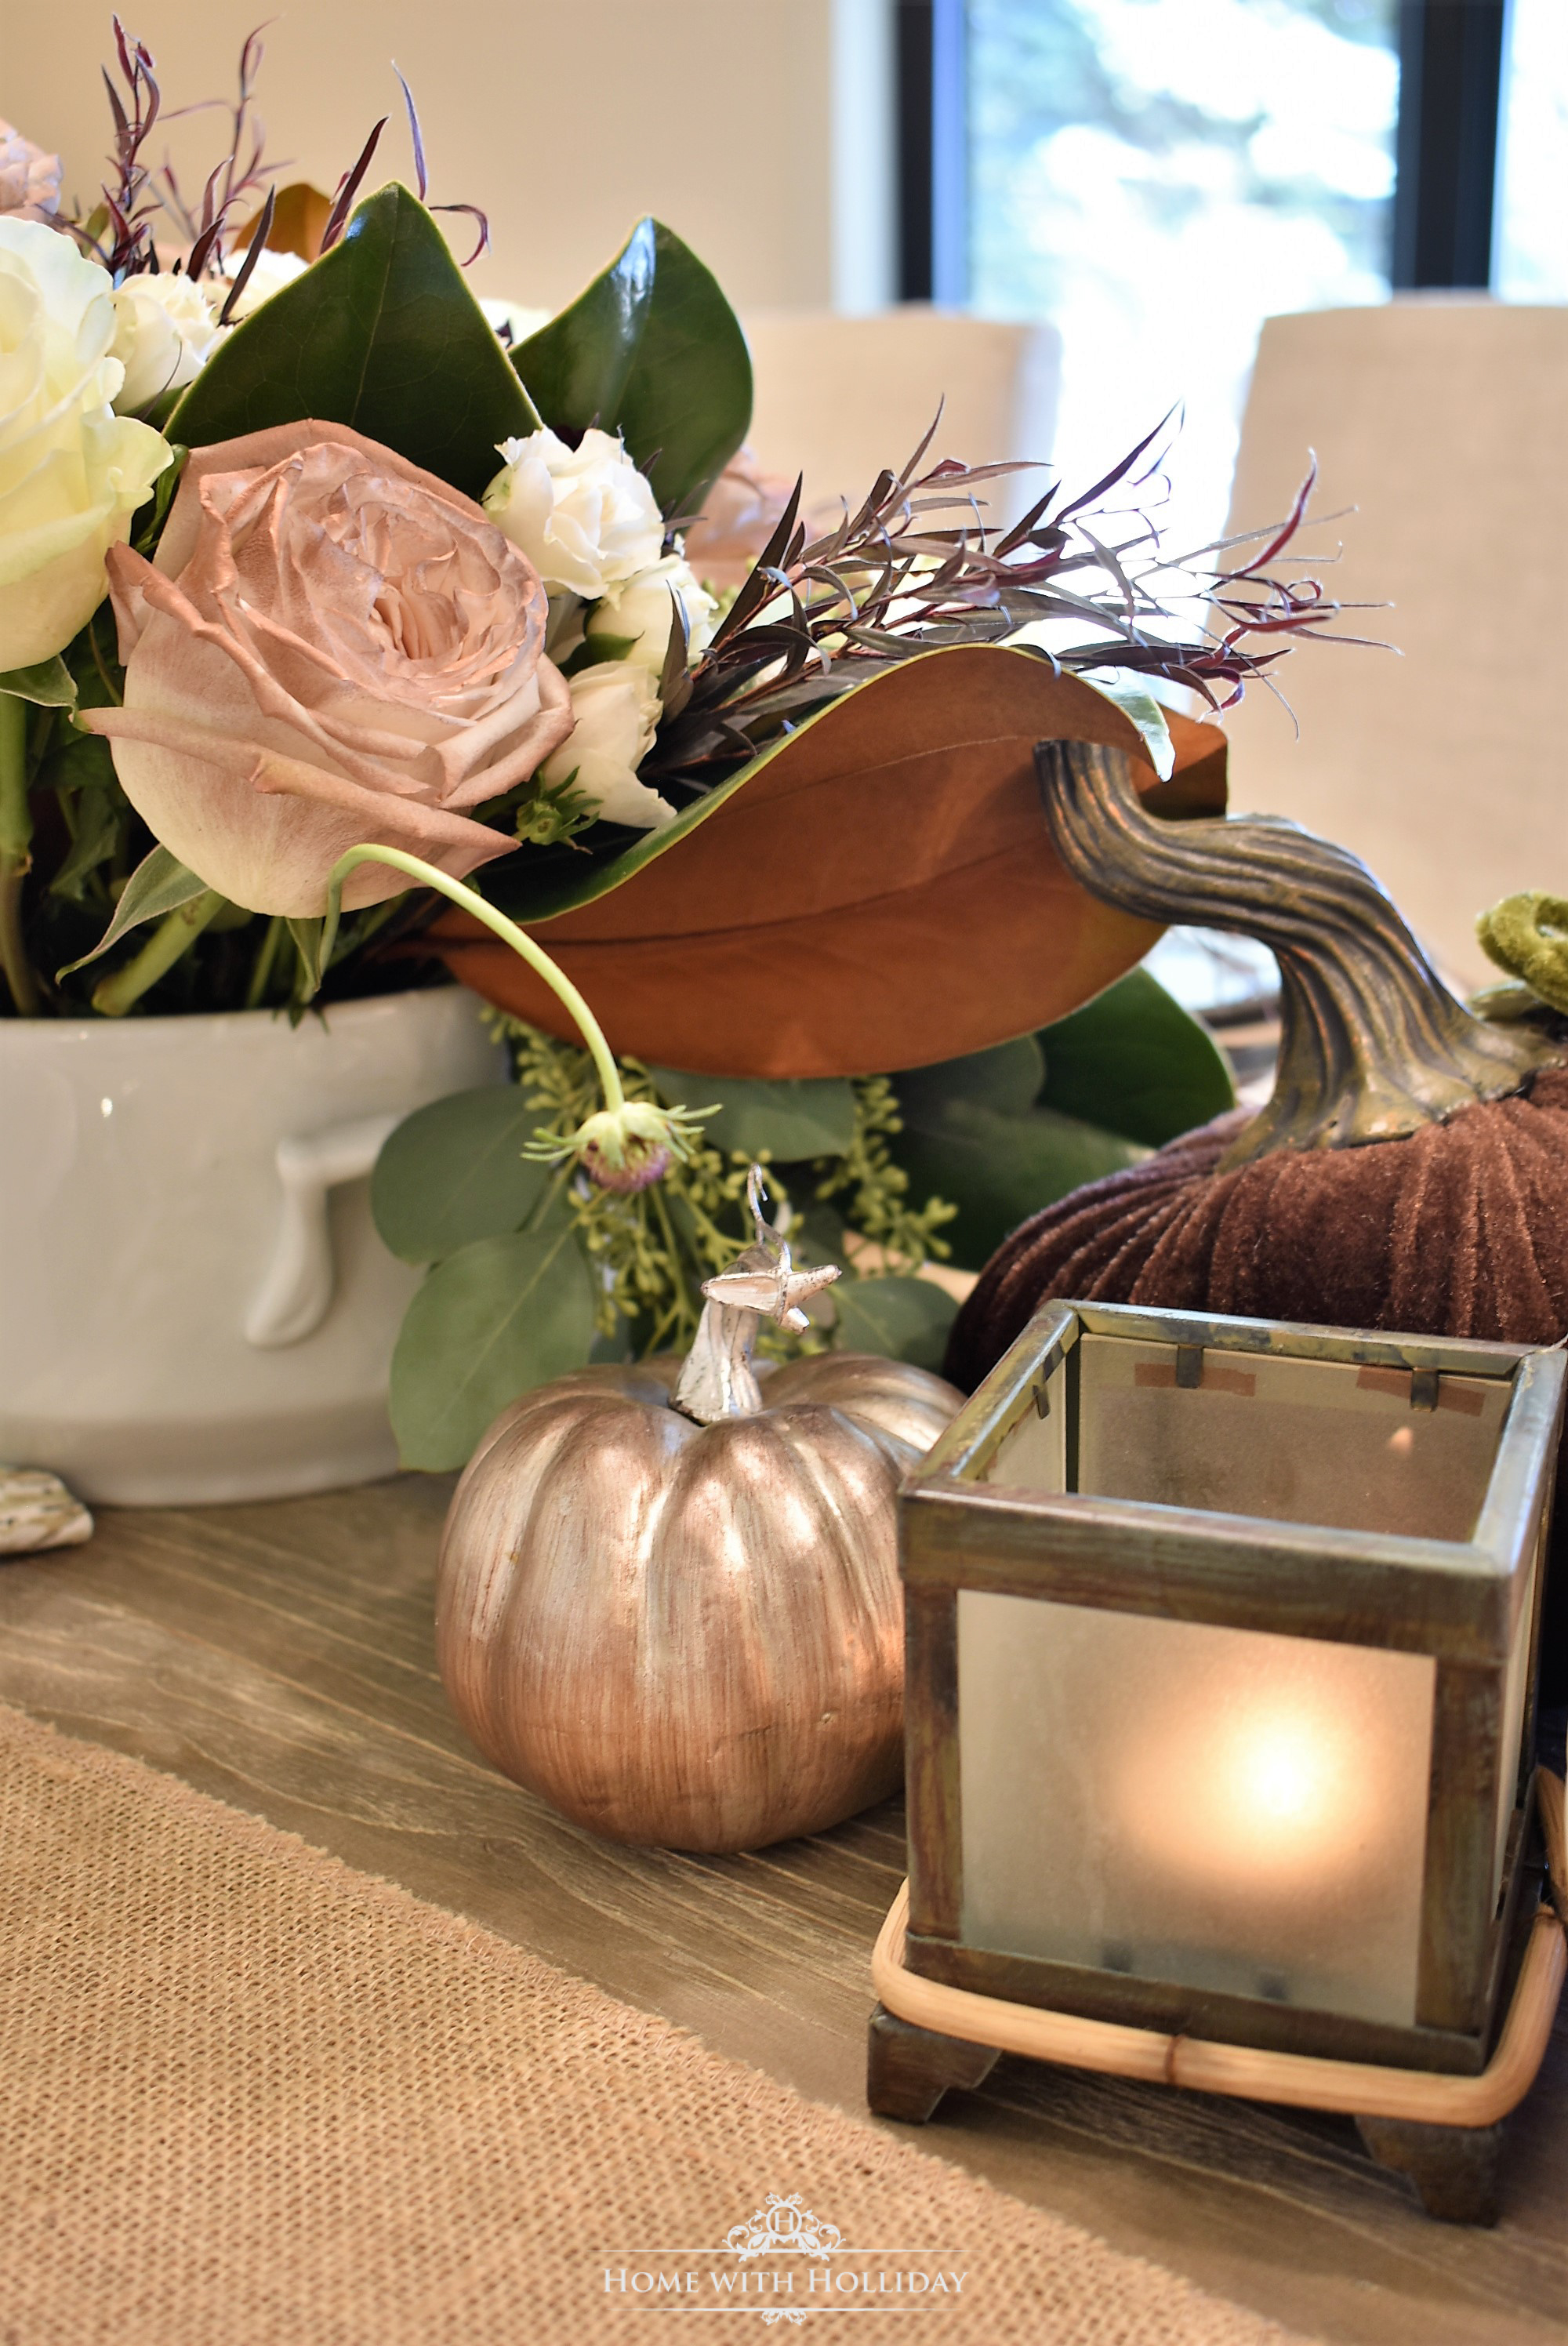 Pumpkins in Fall Table Setting with Brown and White Pumpkin